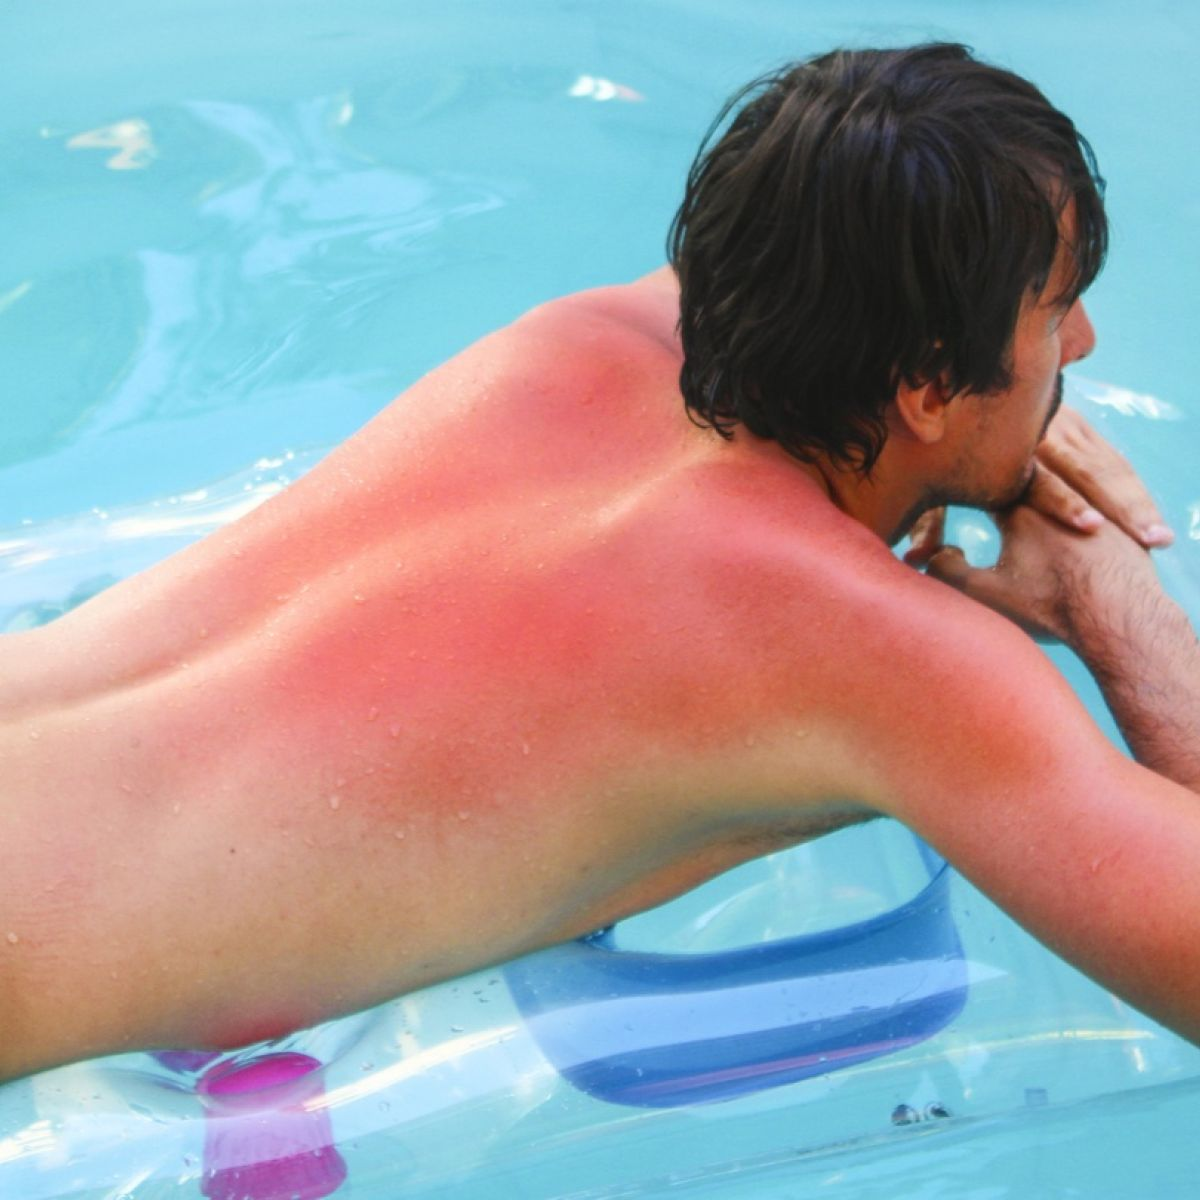 Sunburn prevention tips